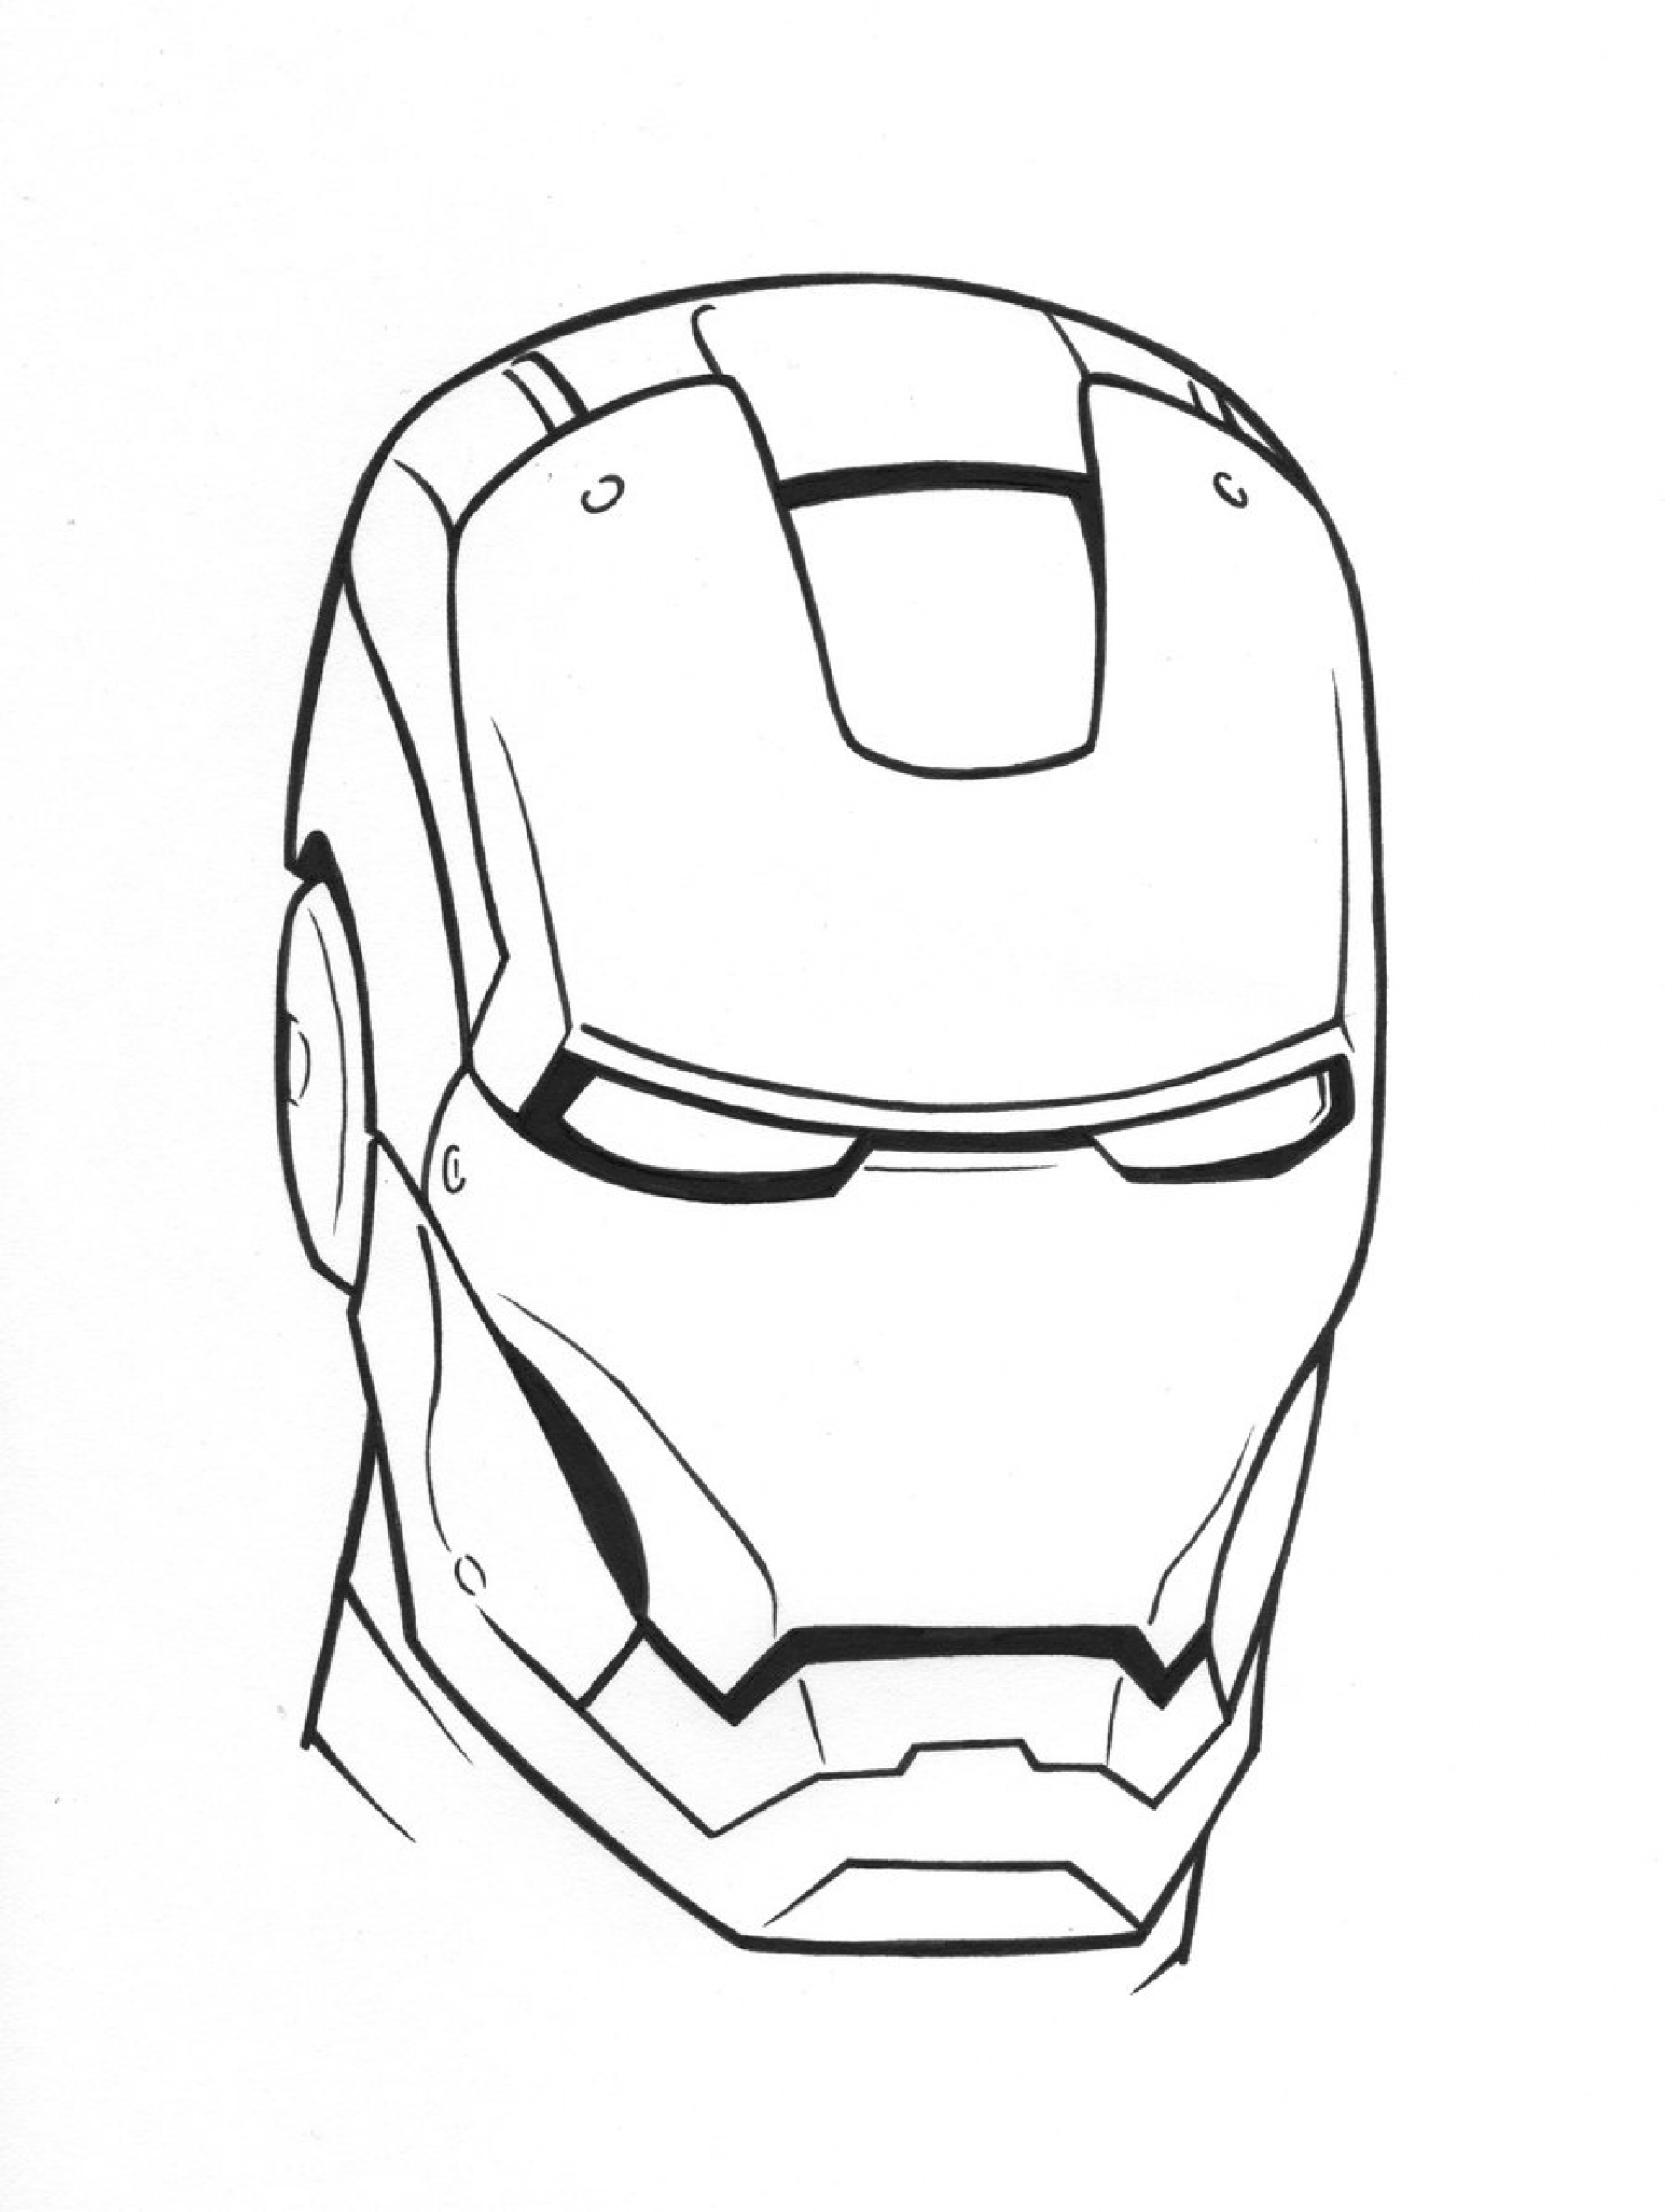 goosebumps coloring pages - iron man coloring pages 2